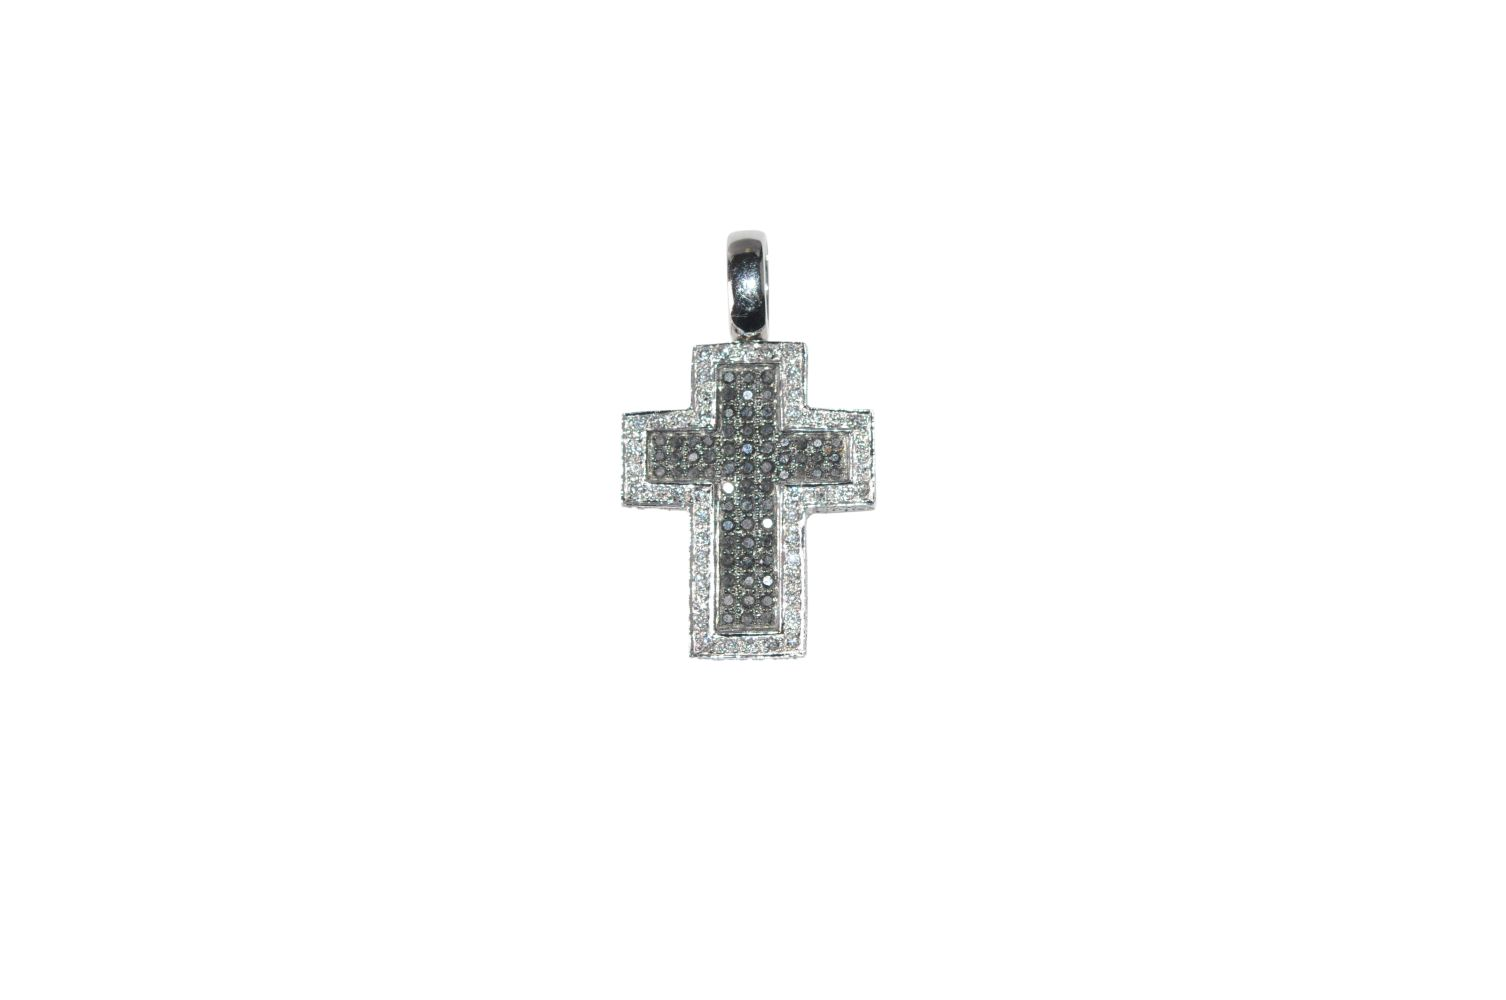 #114 Brilliant cross pendant | Brillant-Kreuz-Anhänger Image